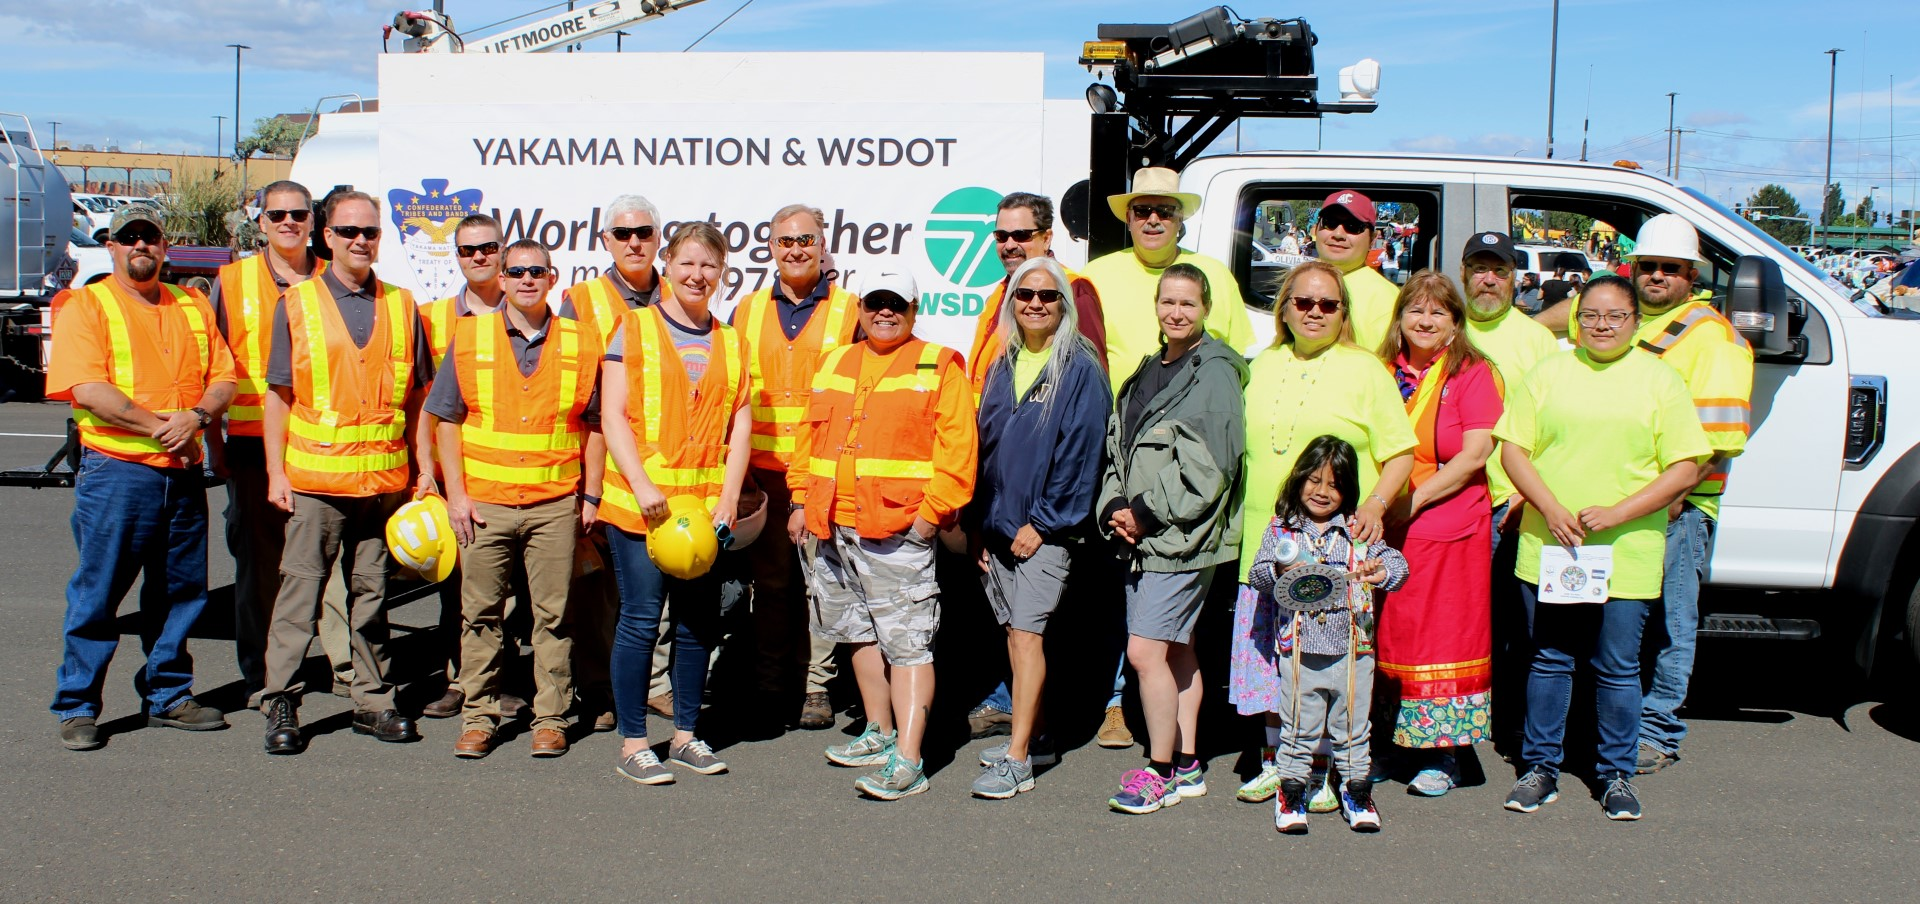 WSDOT staff with the Yakama Nation Tribal Traffic Safety Committee